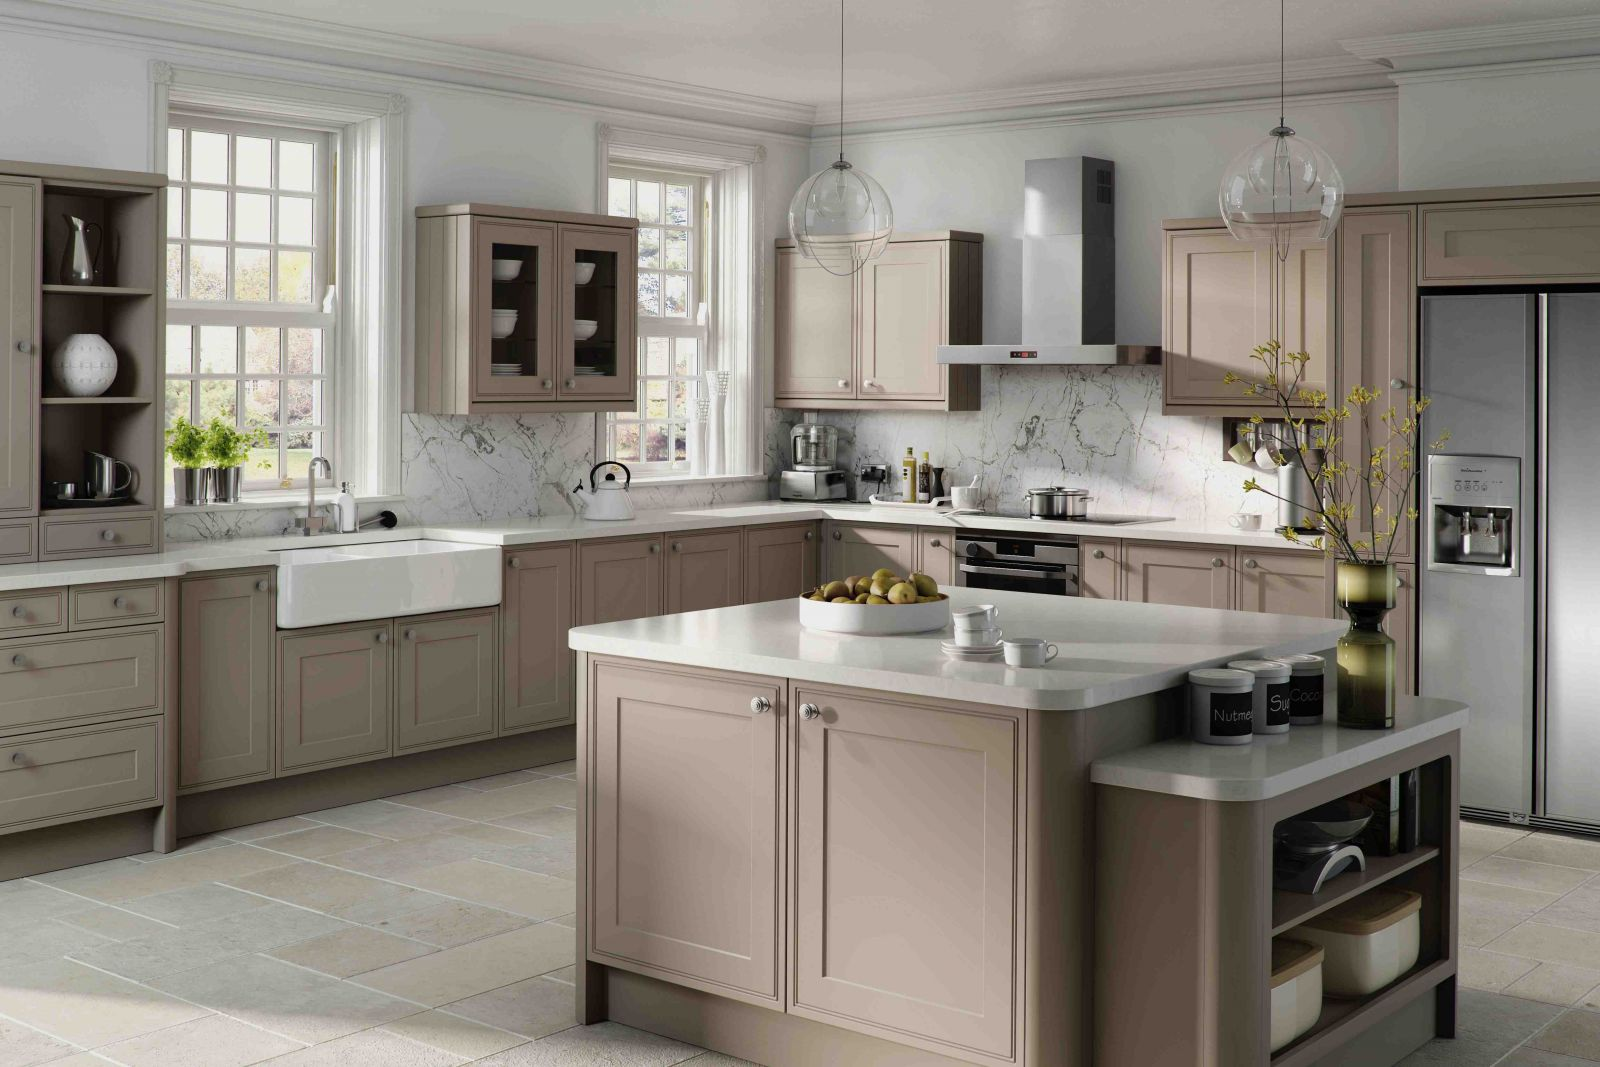 Grey kitchen ideas terrys fabrics 39 s blog for Cuisine taupe